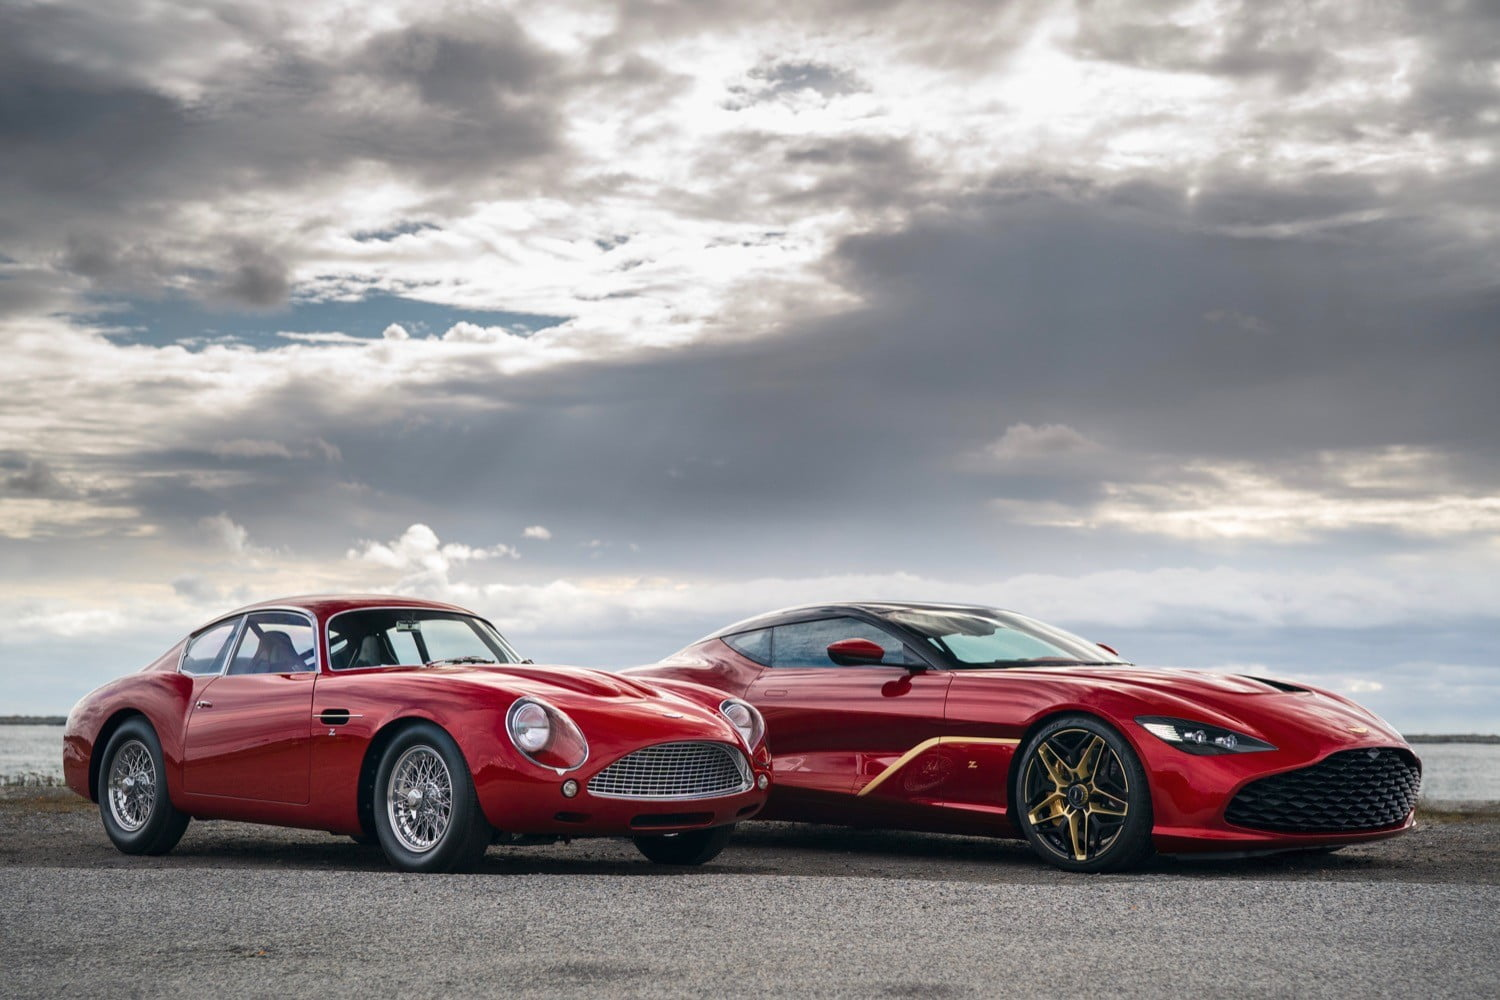 aston martin dbs gt zagato comes with a classic car and db4